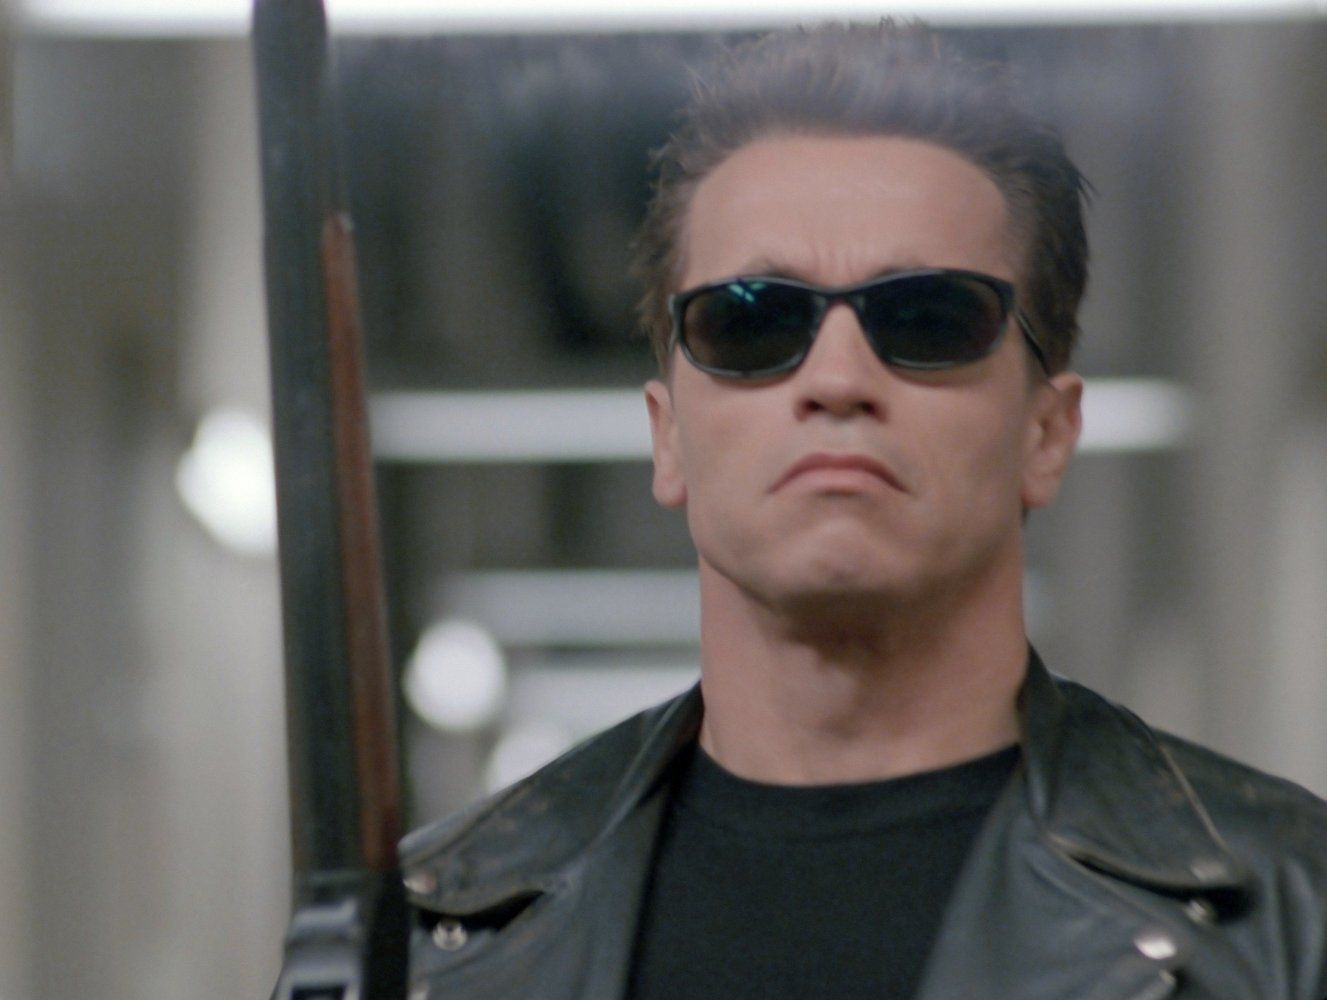 Terminator 2 Judgment Day 1991 With Images Arnold